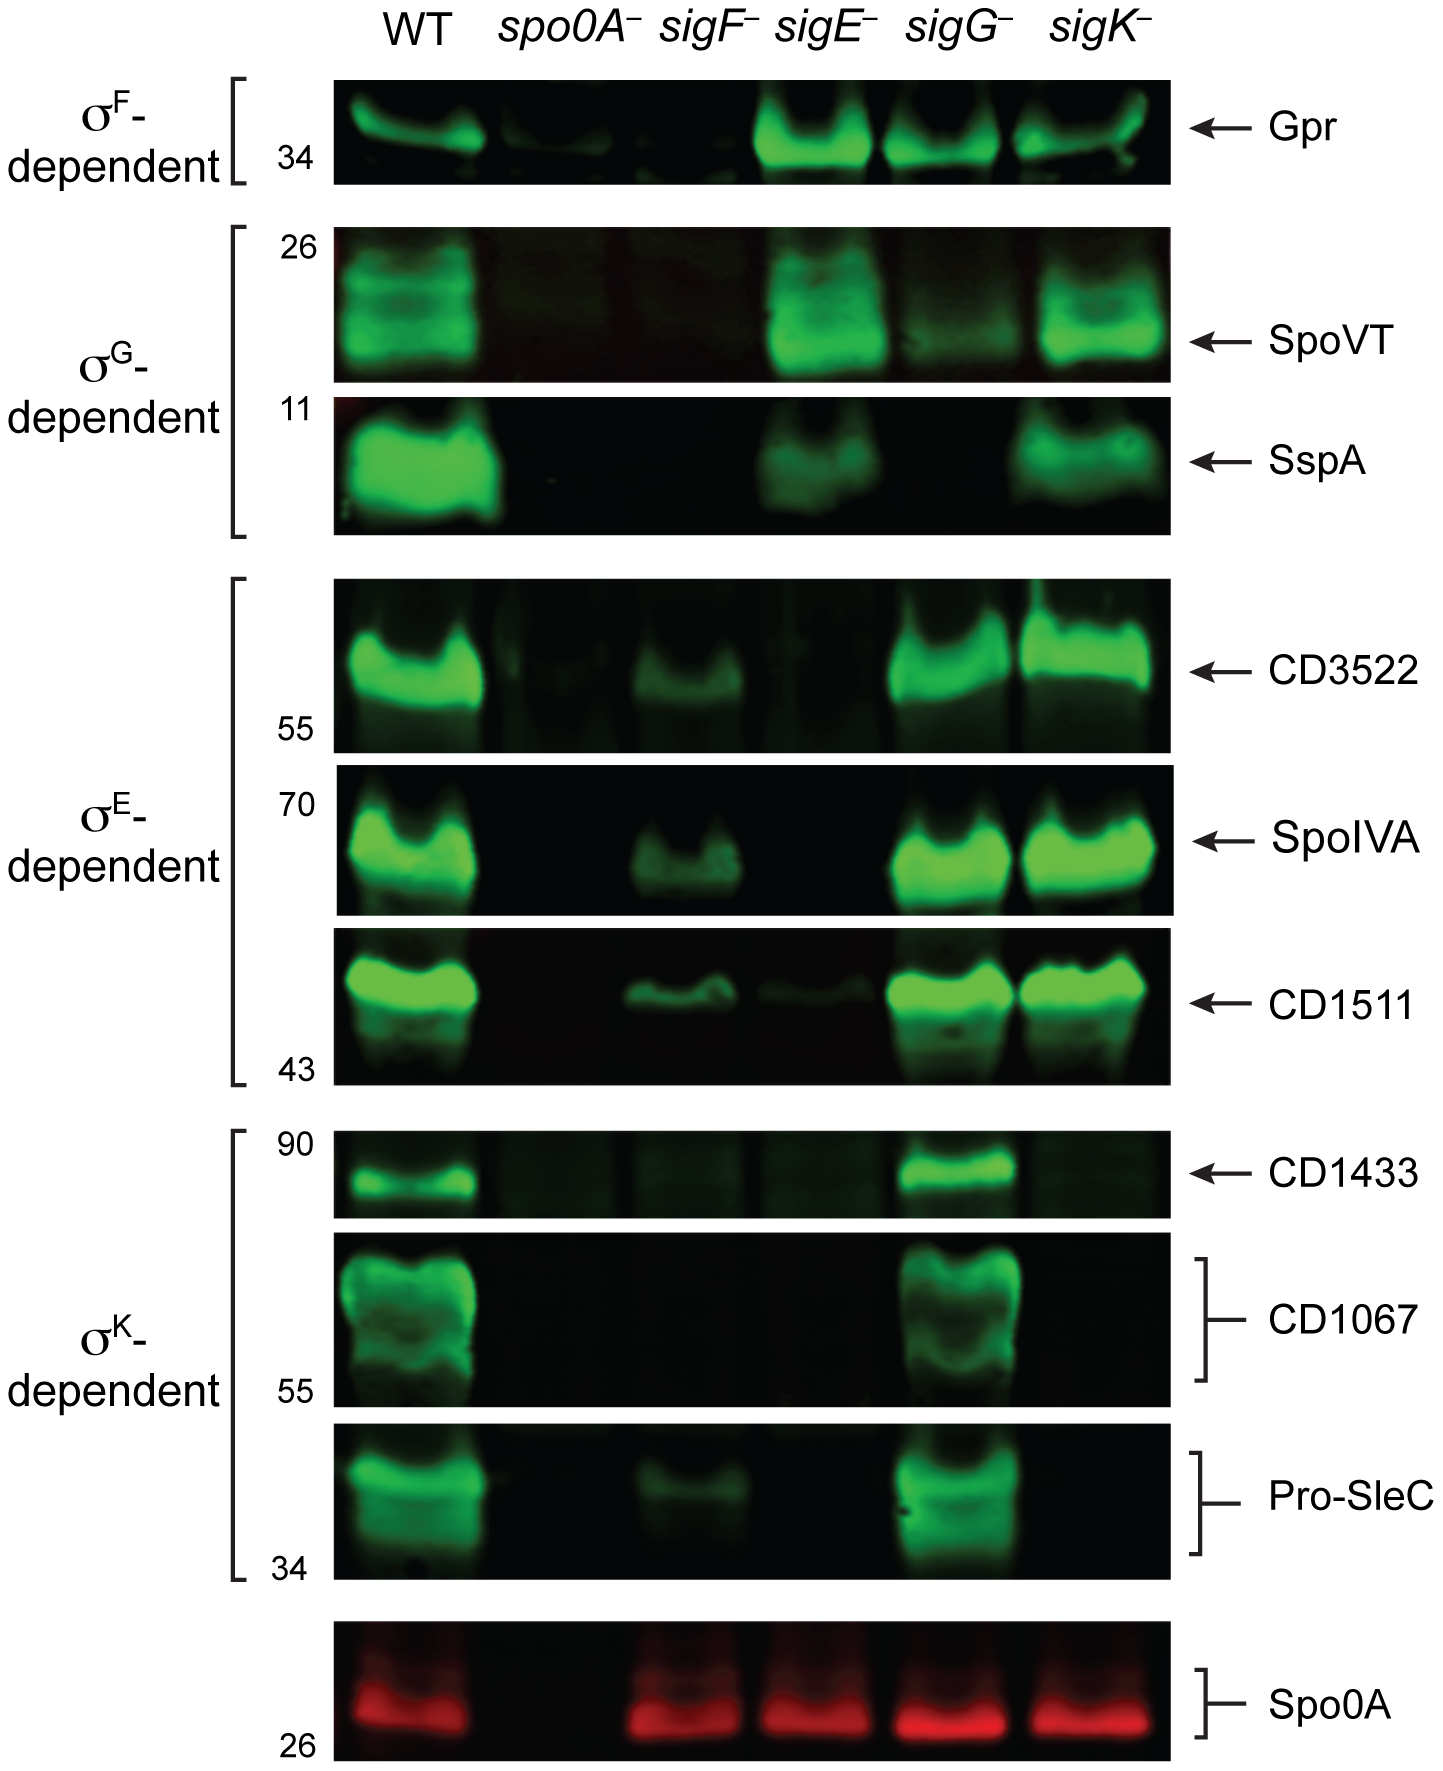 Western blot analyses of proteins encoded by genes induced by specific sigma factors during sporulation.